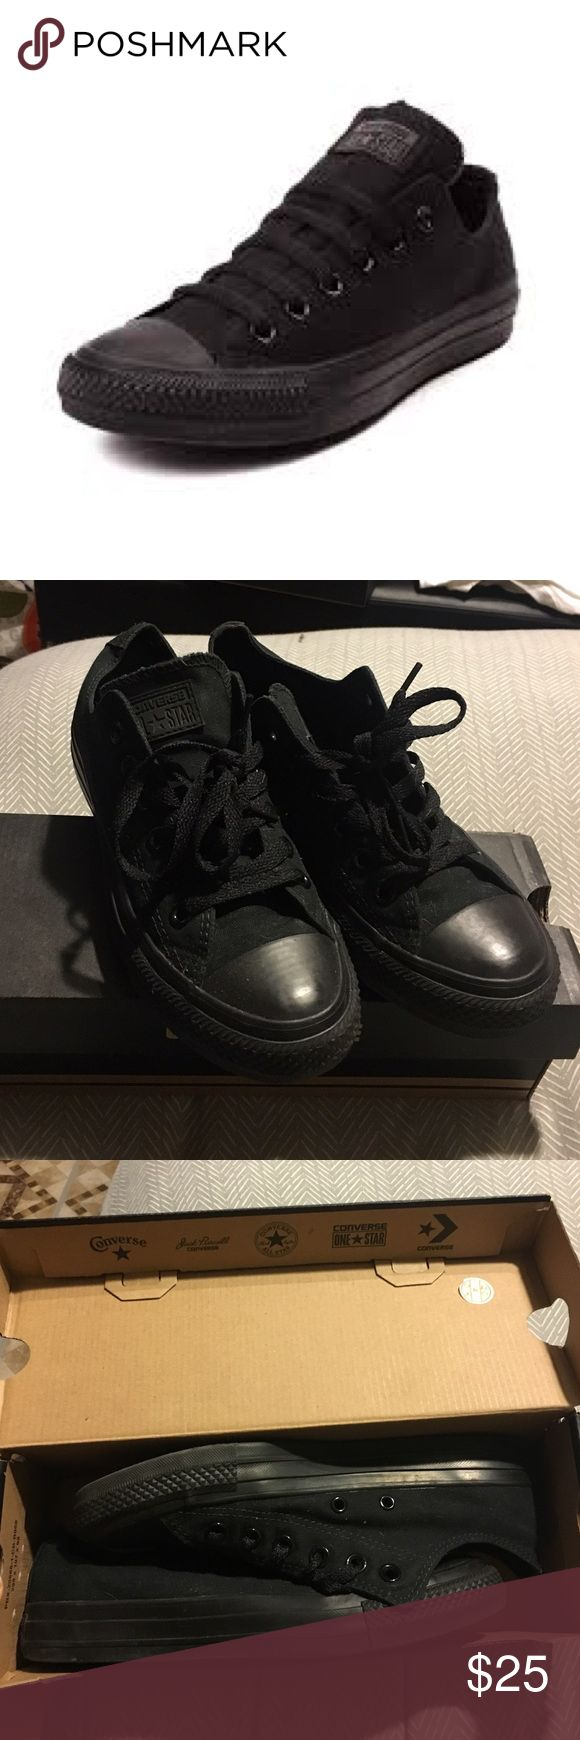 Black low top converse sneakers Worn total of 3 times, in great condition! Comes with box Converse Shoes Sneakers